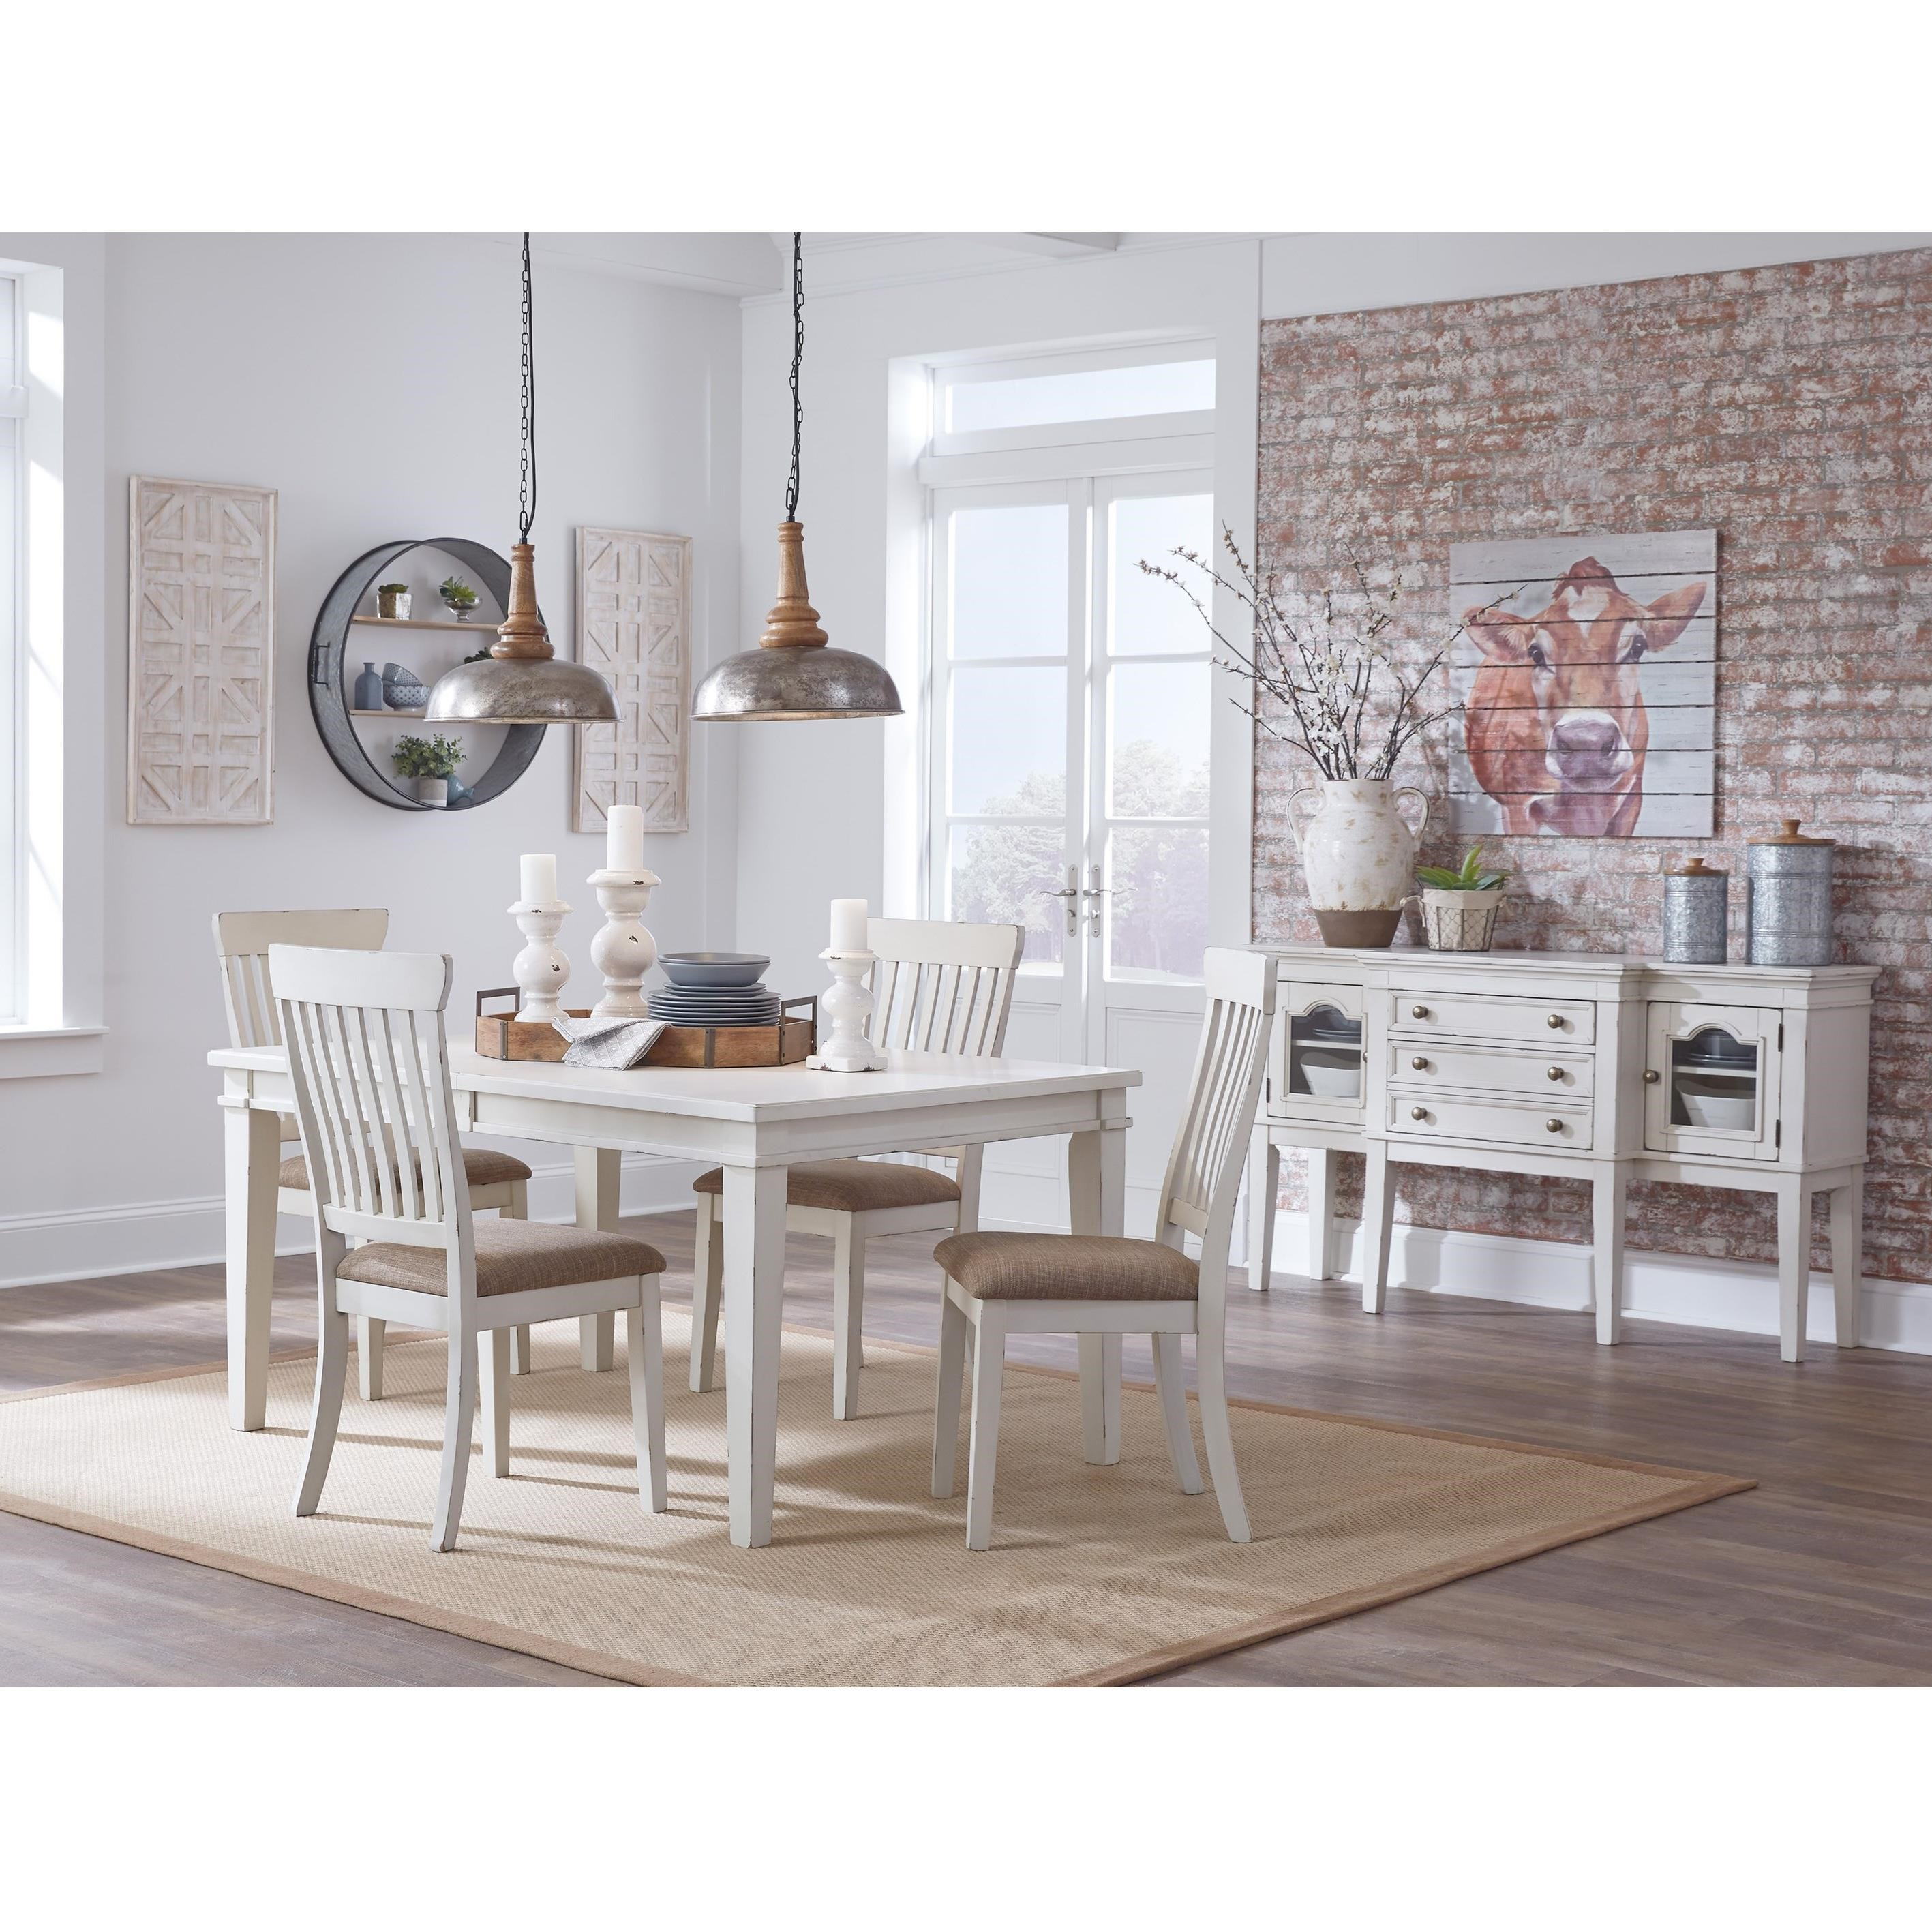 Formal Dining Room Furniture Manufacturers: Casual Dining Room Group By Signature Design By Ashley